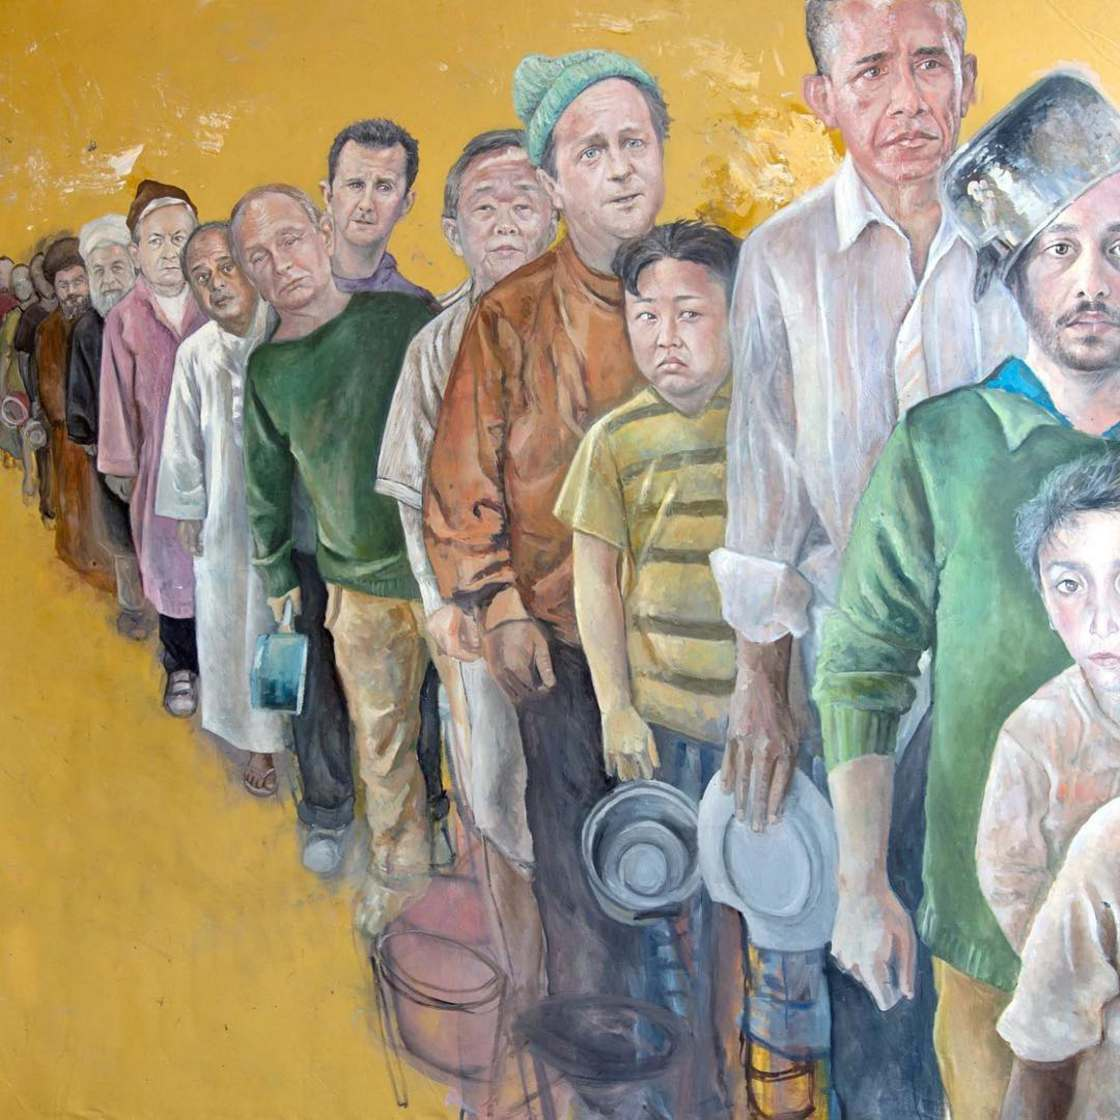 Syrian artist transforms world leaders into refugees